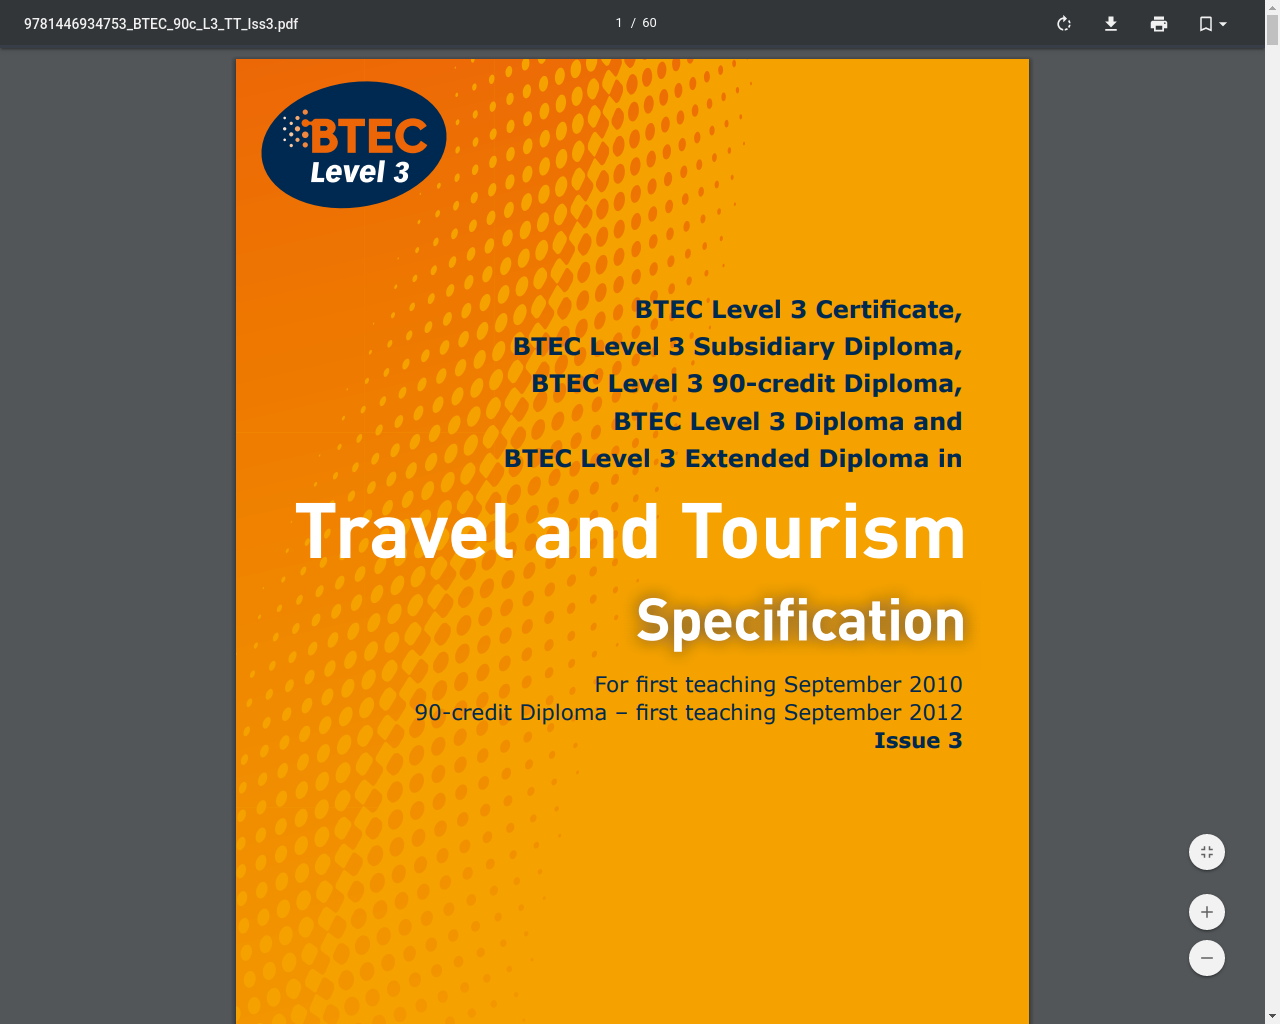 BTEC Level 3 Subsidiary Diploma in Travel and Tourism - Specification